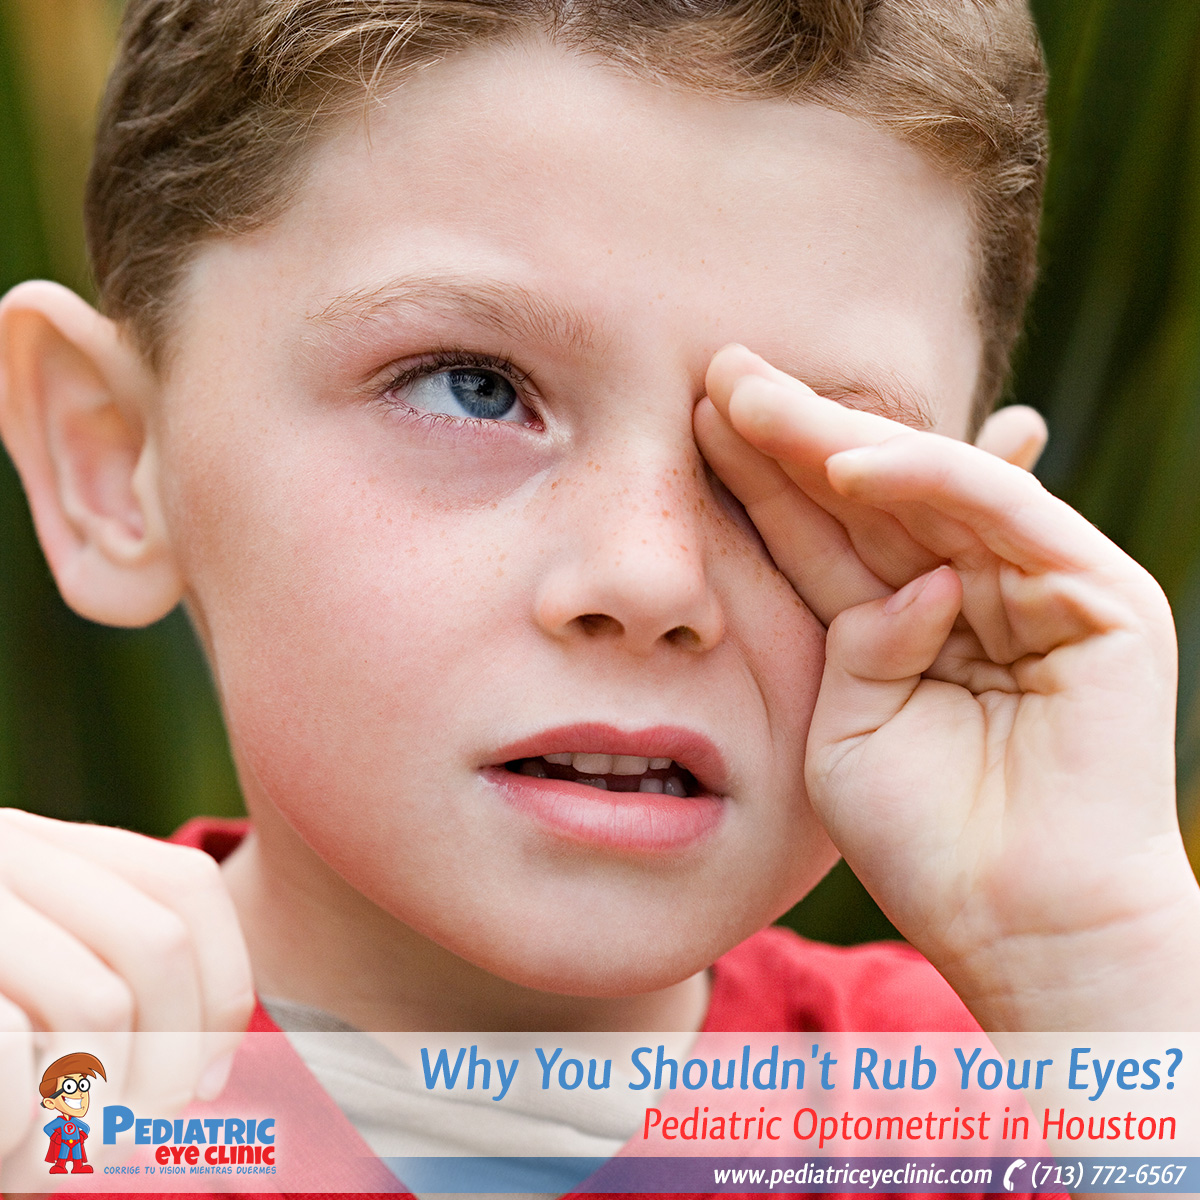 07 Pediatric Optometrist in Houston